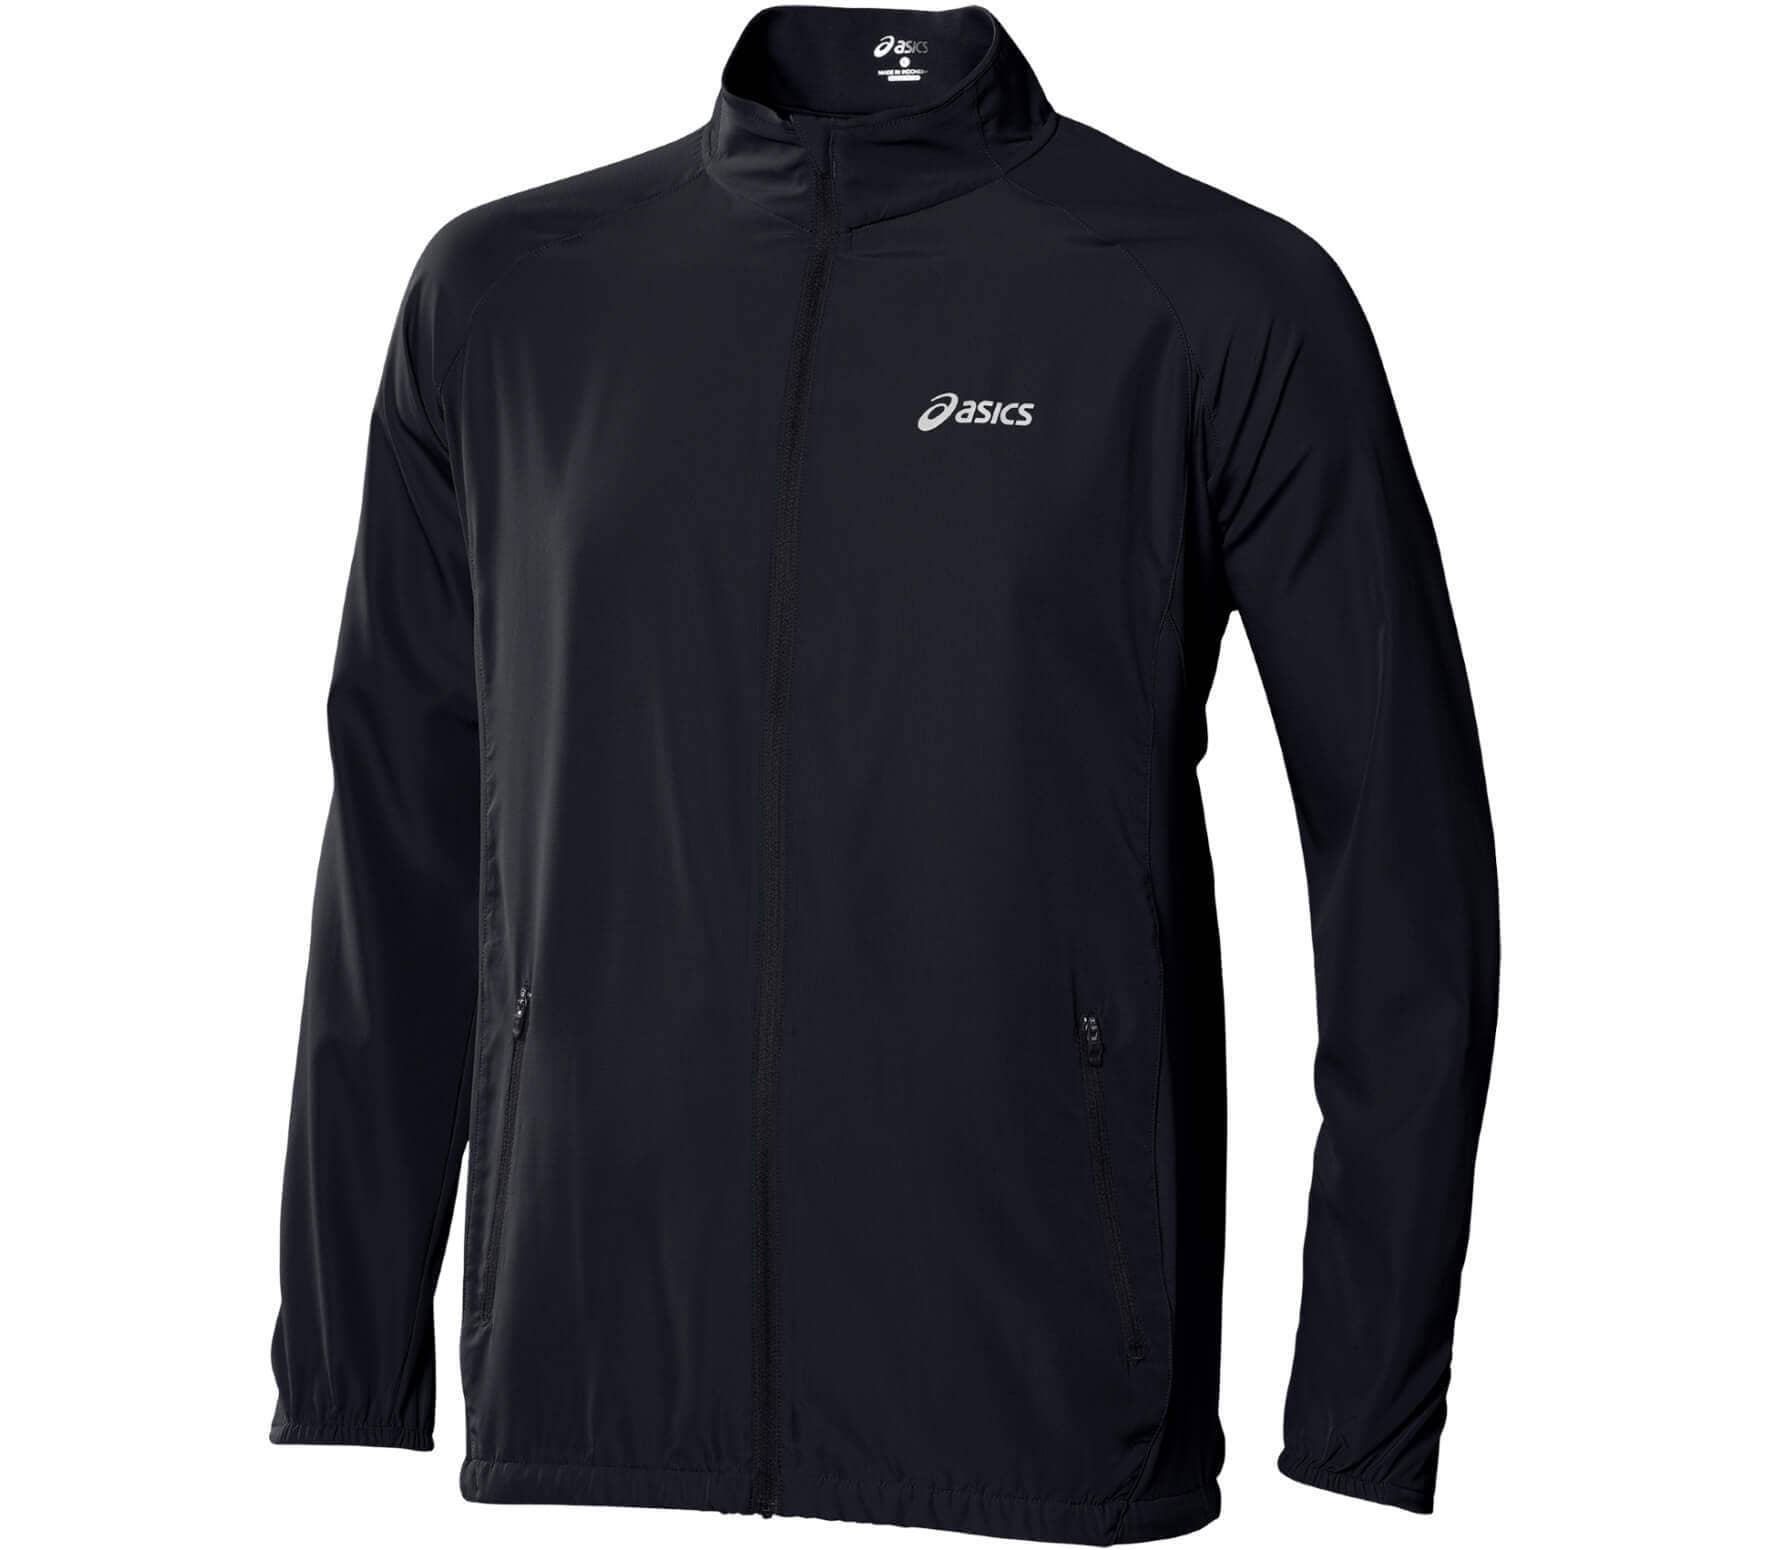 ASICS - Woven men's running jacket (black) - S thumbnail